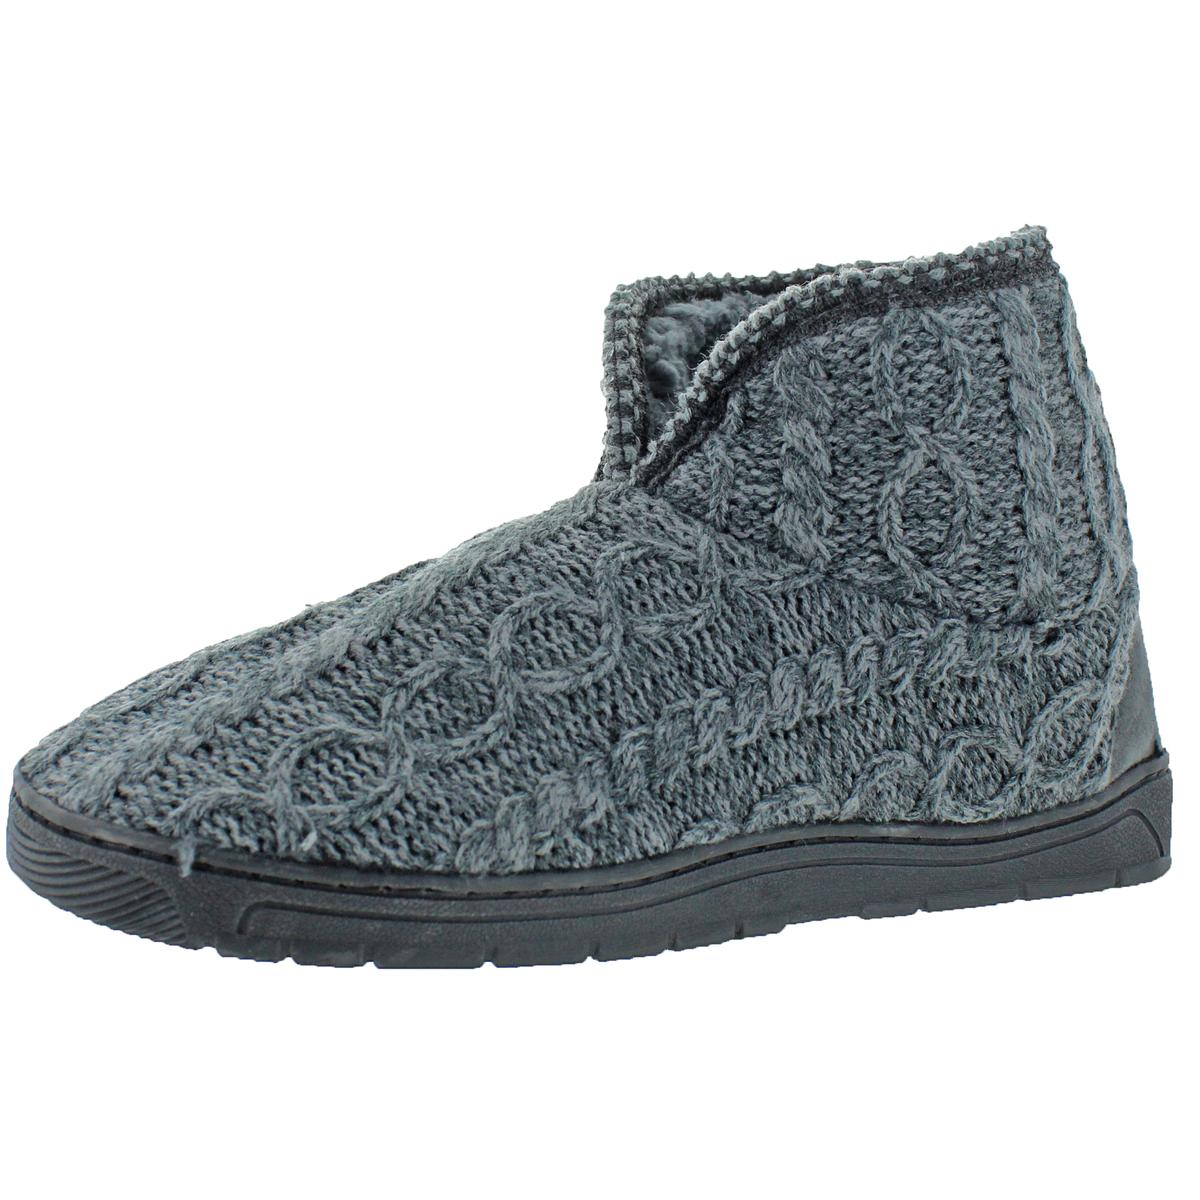 Mukluks-Men-039-s-Mark-Sweater-Knit-Furpa-Ankle-Bootie-House-Slippers thumbnail 8